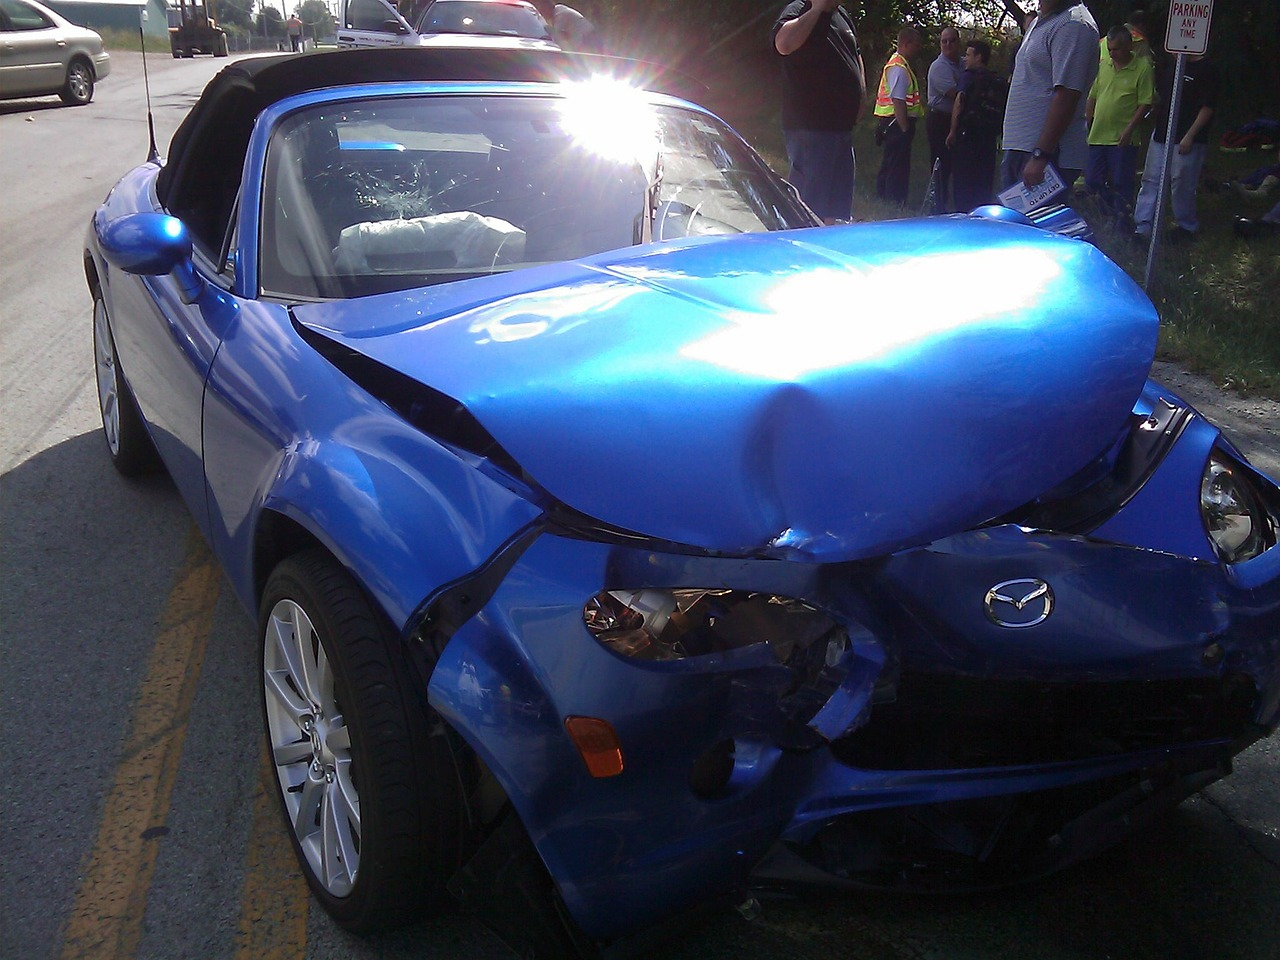 You Can't Be Held Accountable For A Car Crash In These Situations.